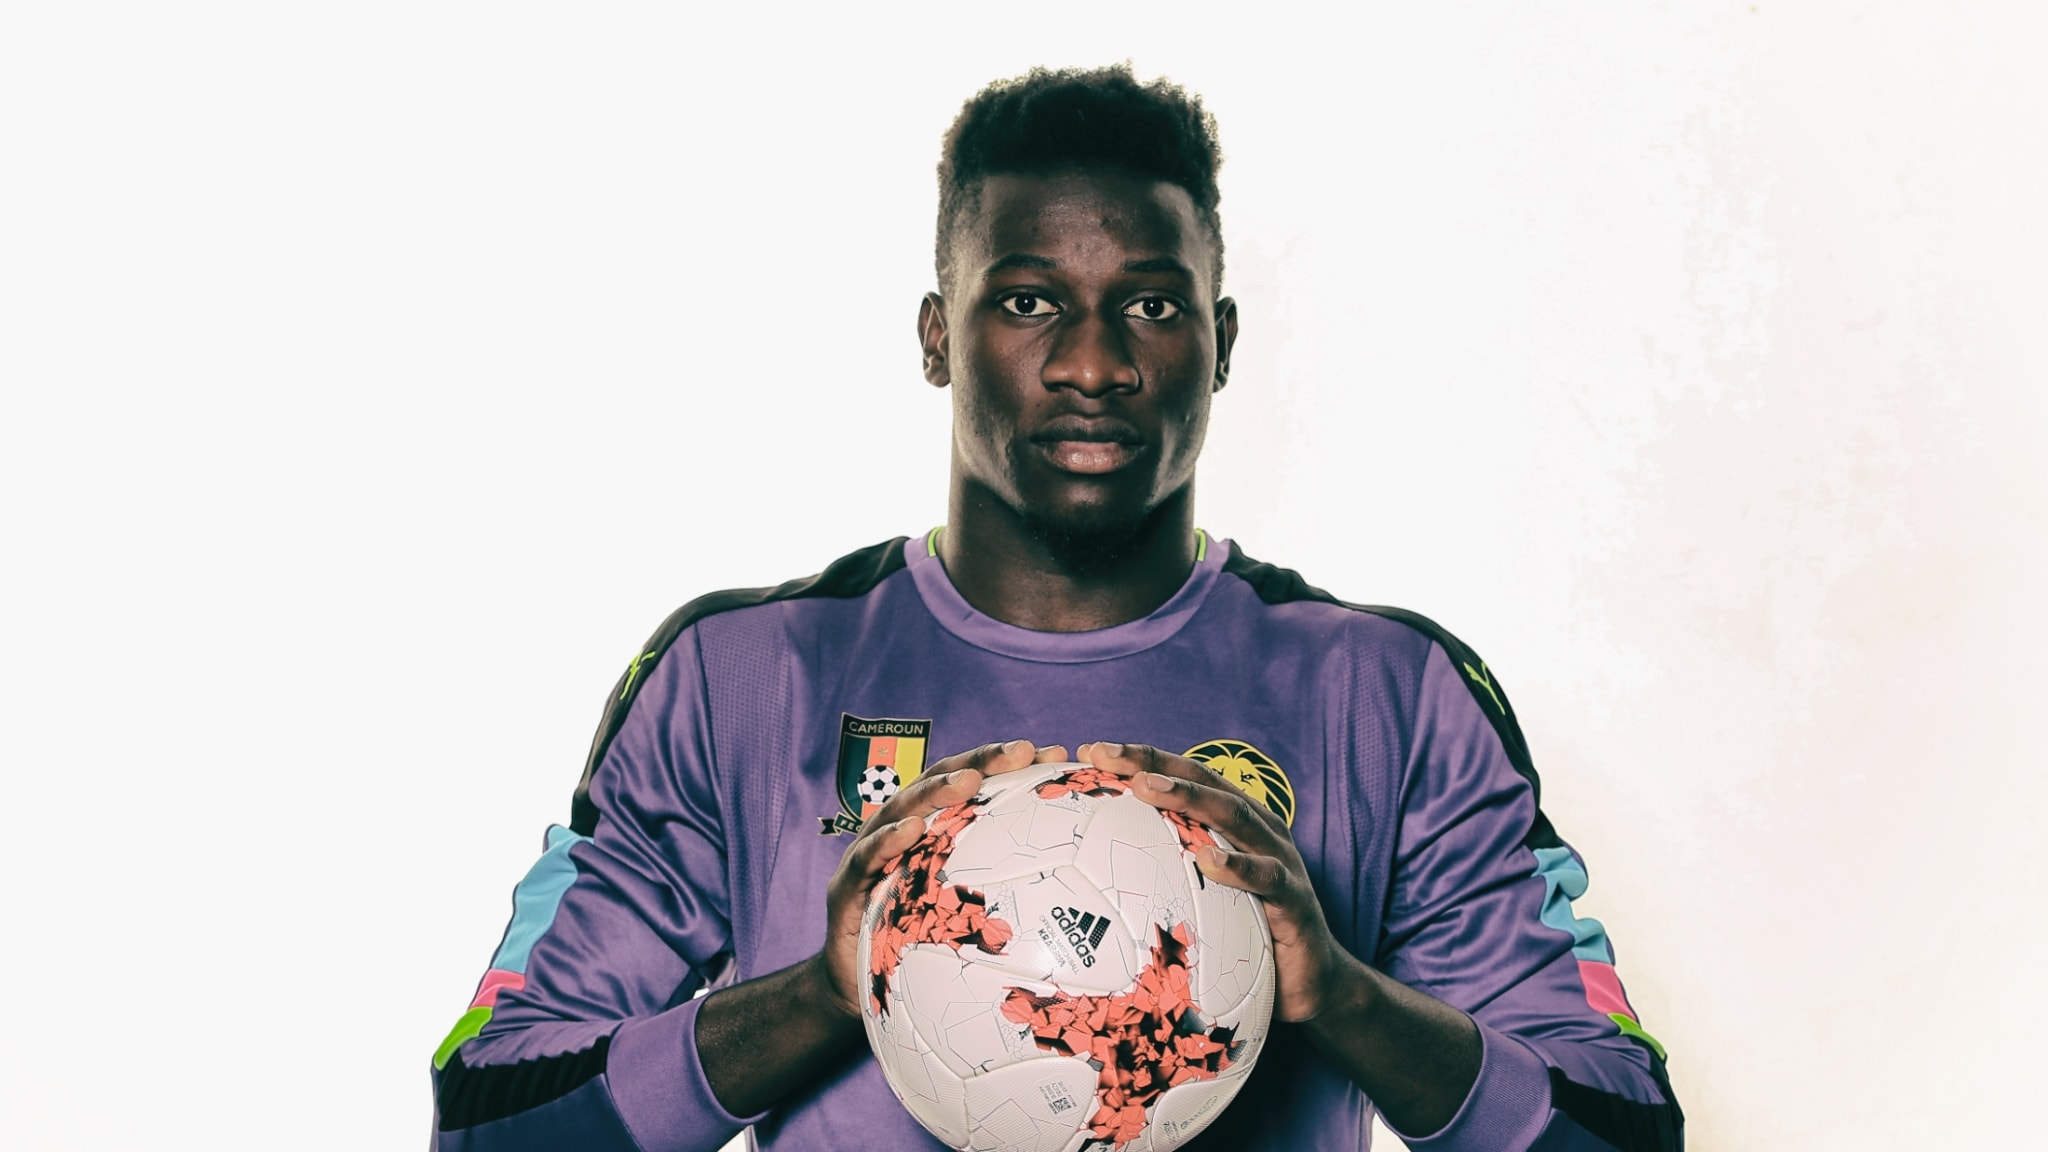 Andre Onana of Cameroon during a portrait shoot